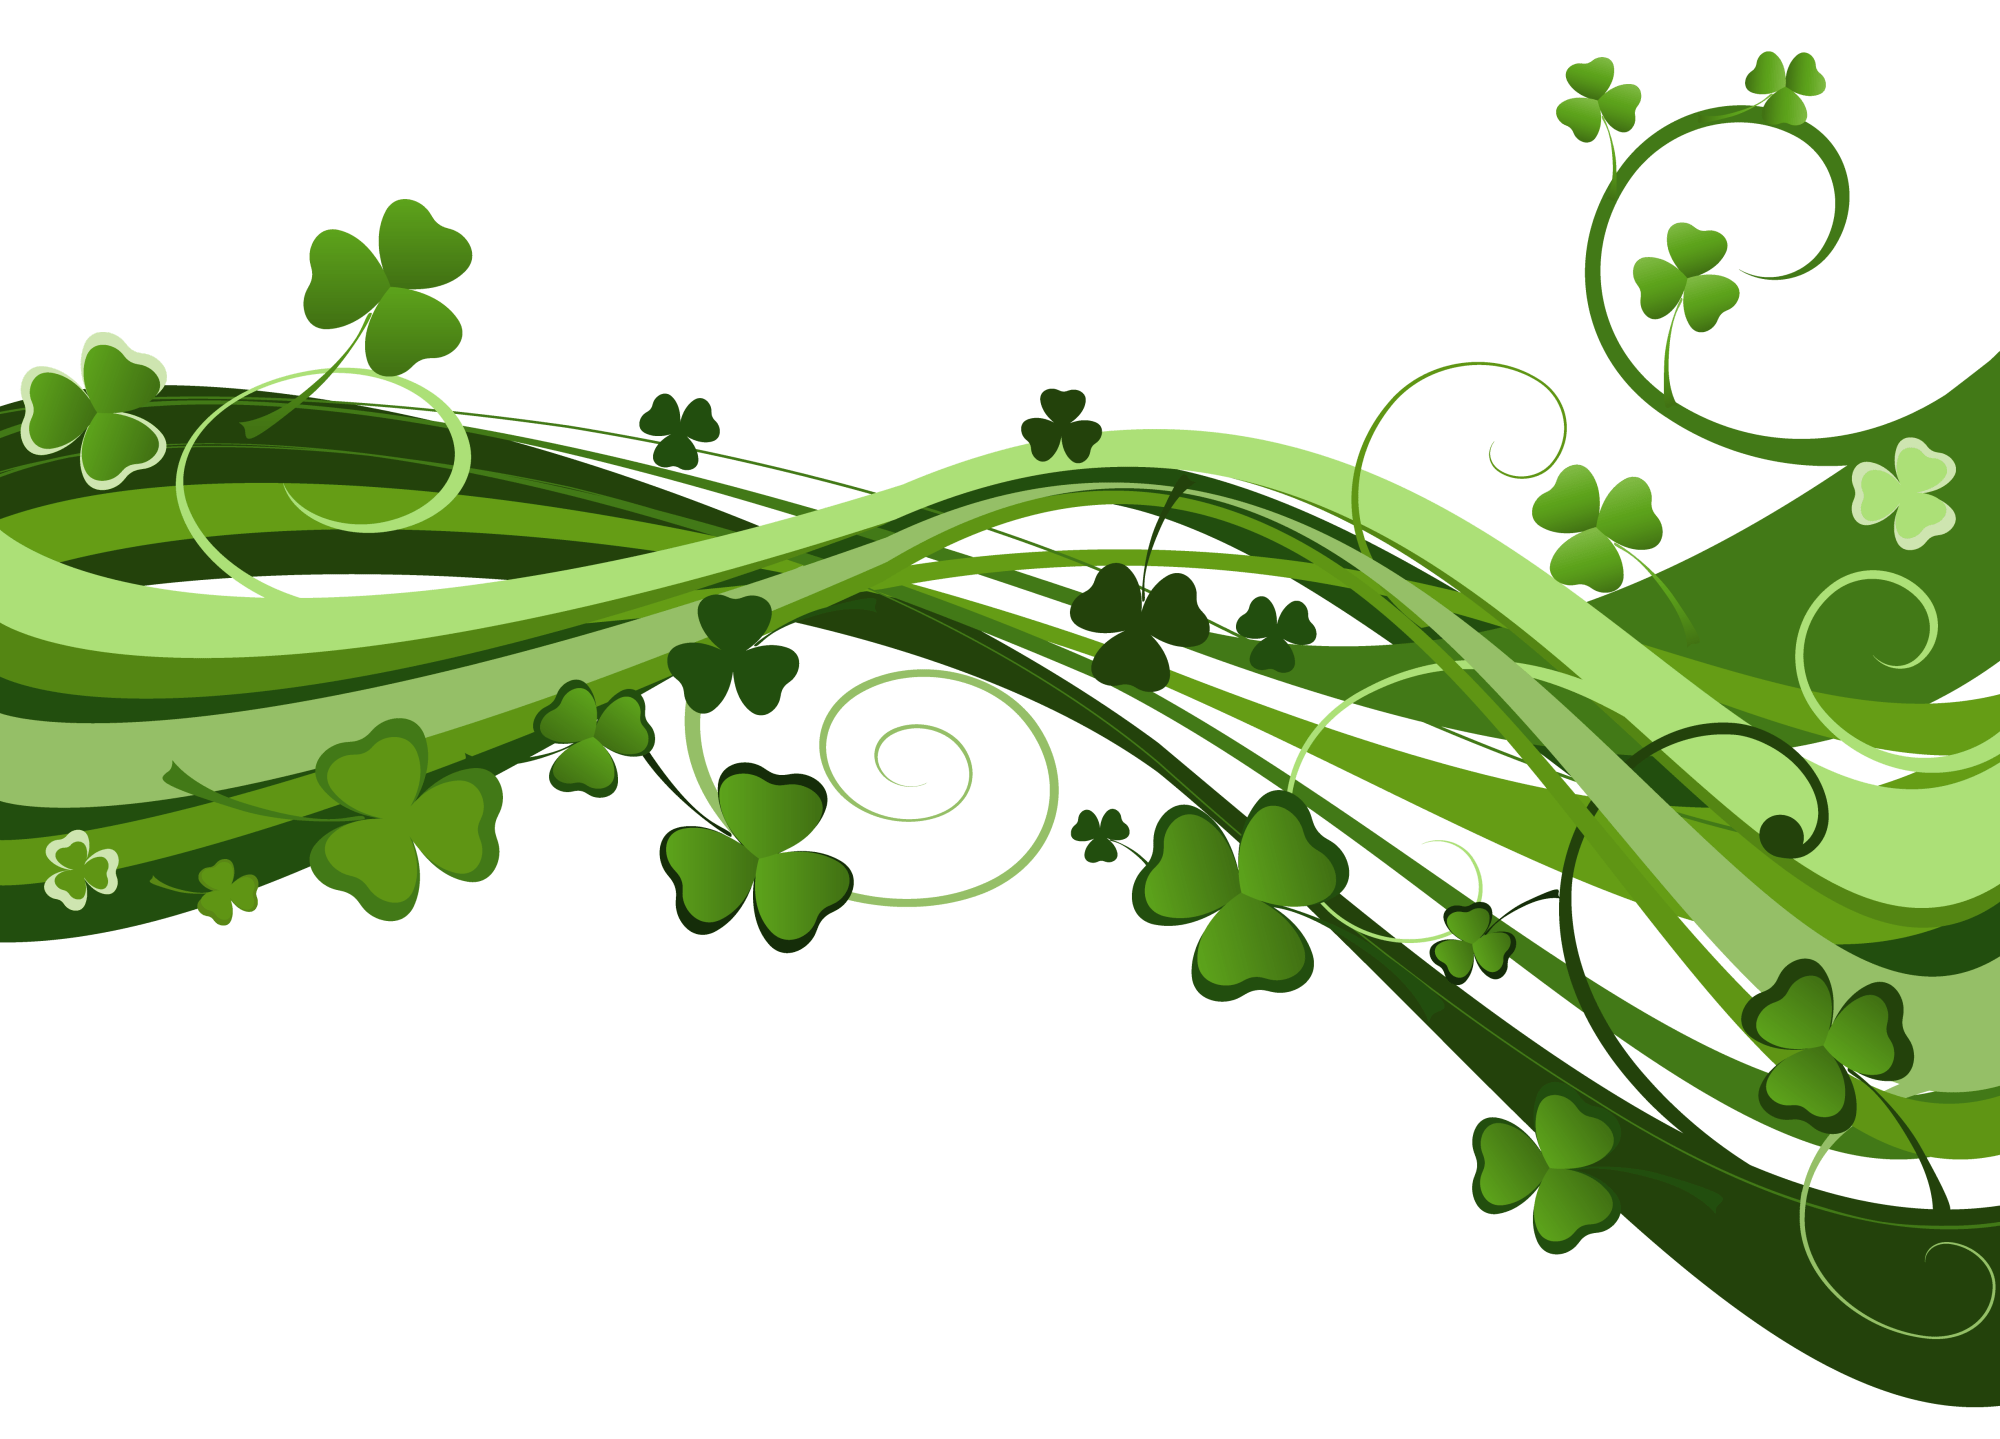 hight resolution of st patricks day shamrock decor png clipart